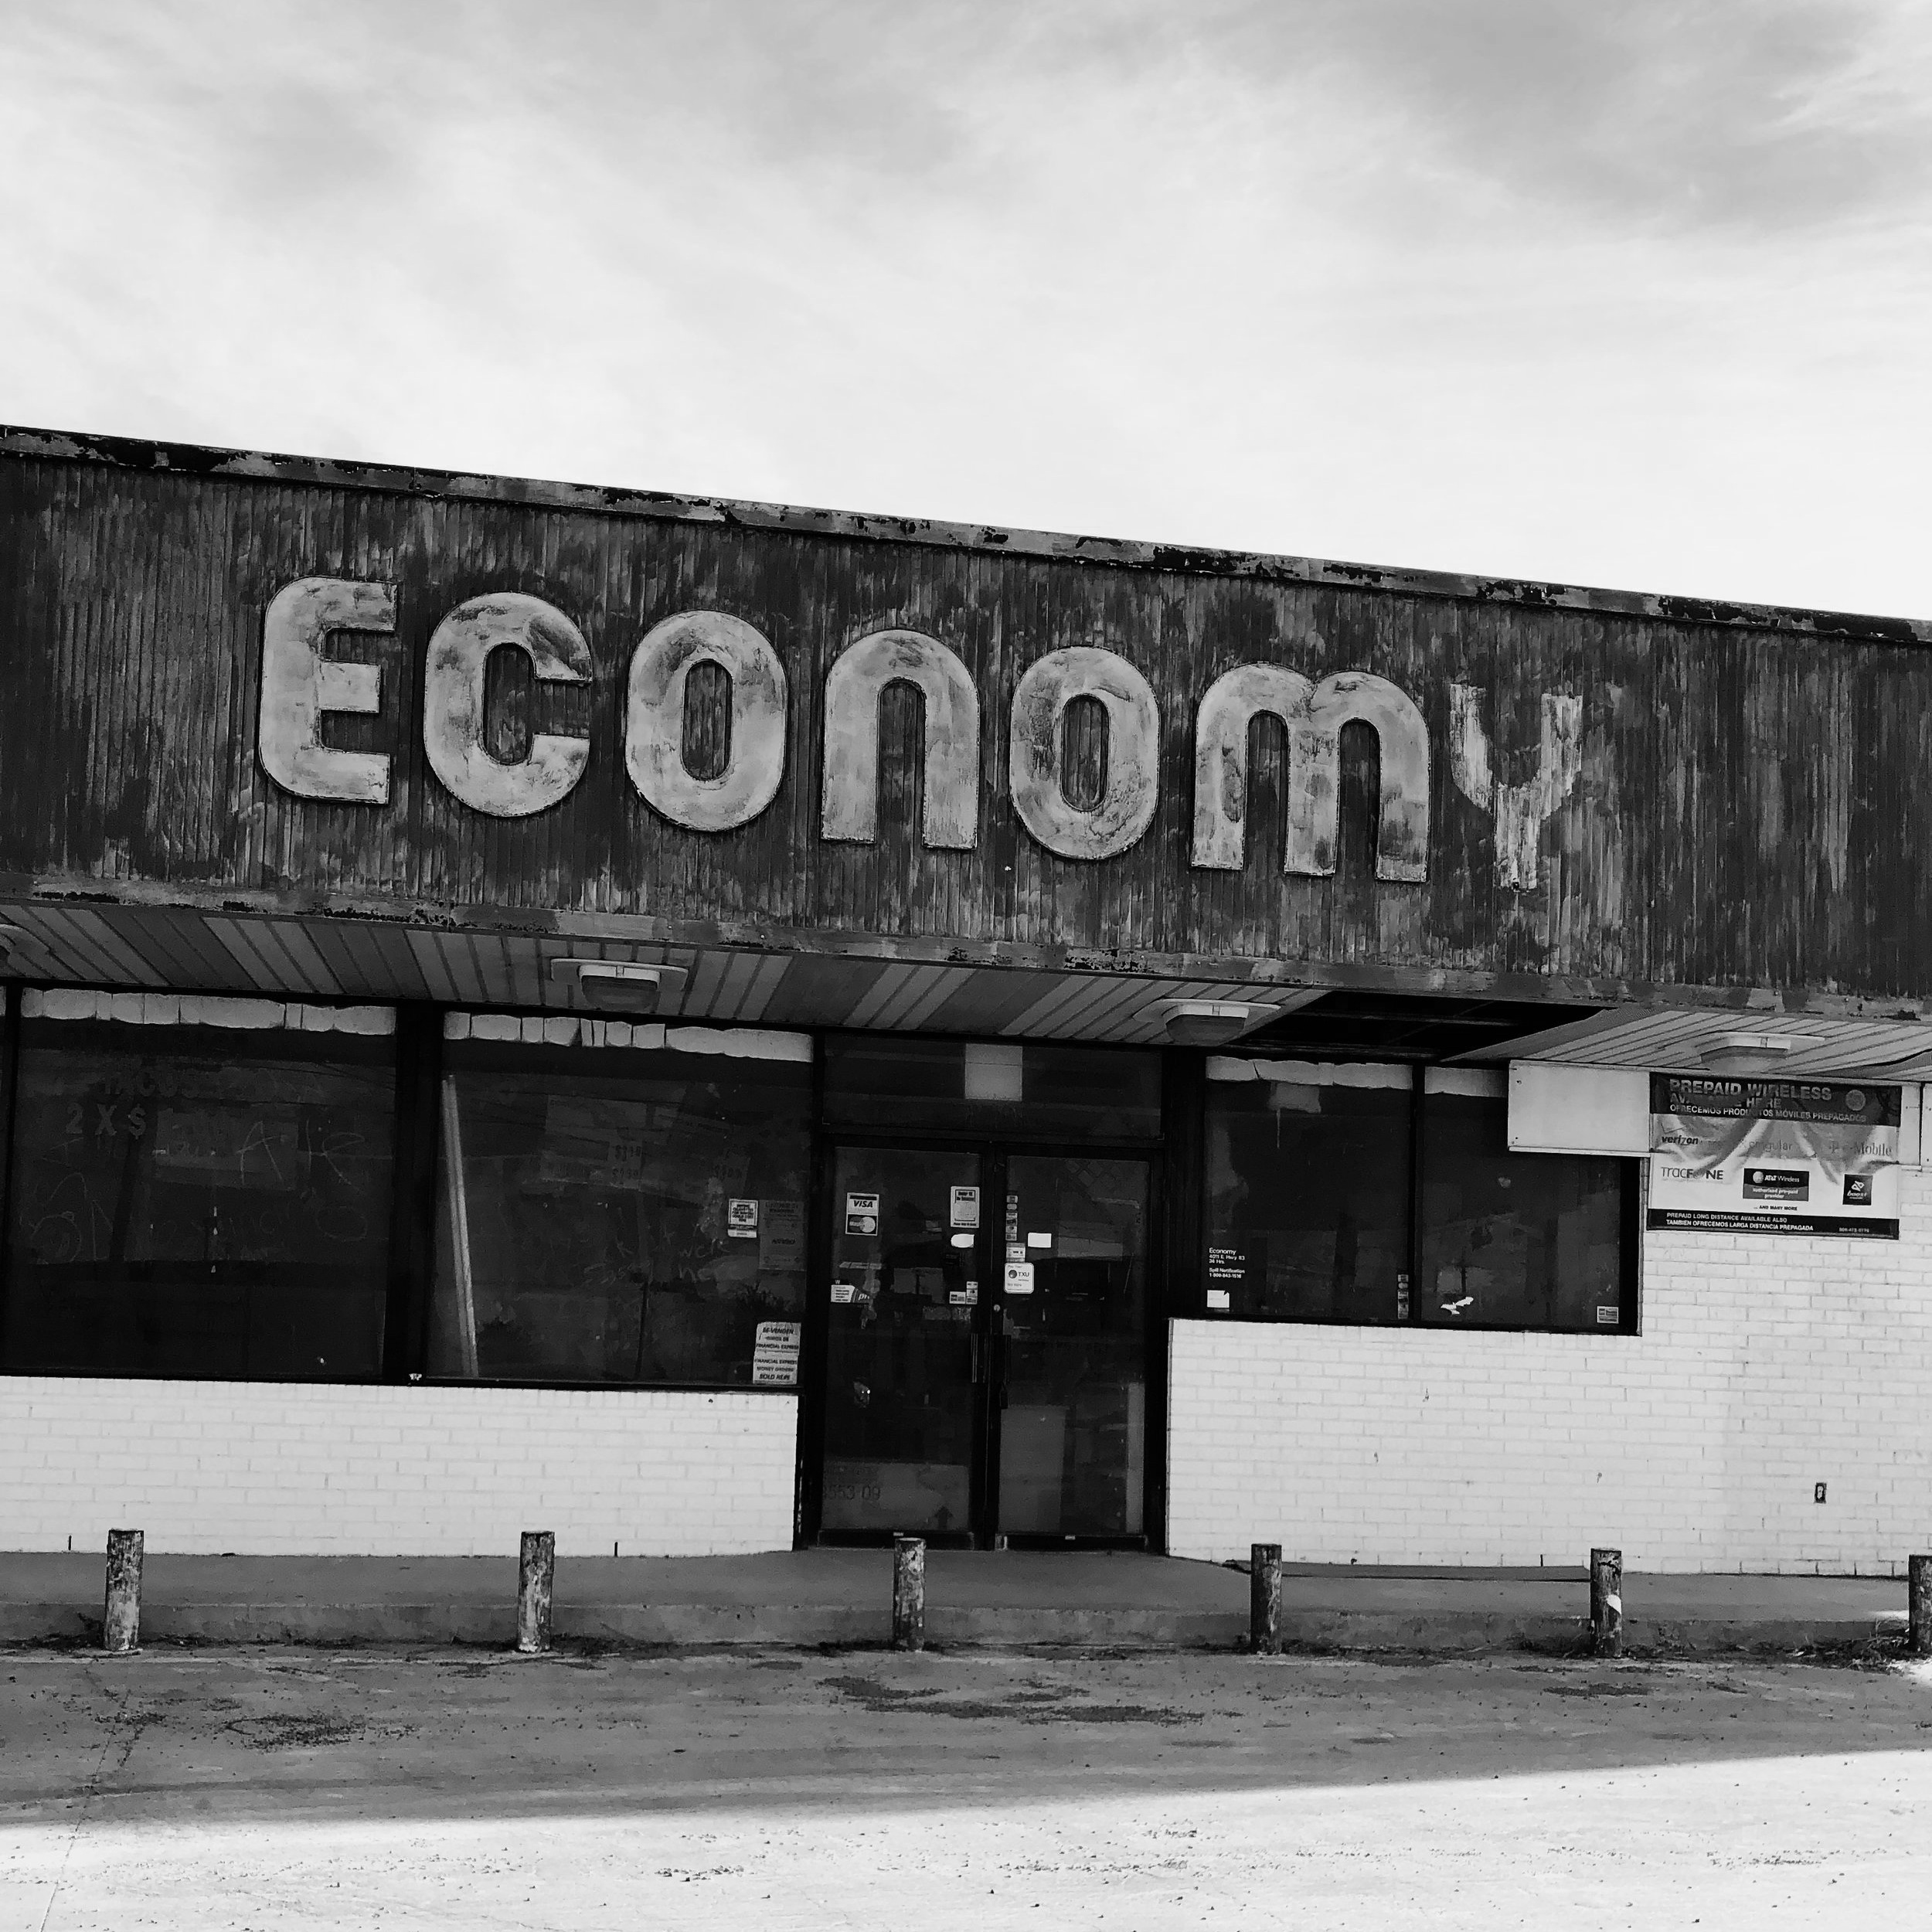 "The Economy - ""Now that we were in summer school, Ángel and I went to the Economy after class every day because it was run by Ángel's uncle Benny, this old school cholo who'd found Jesus in prison. The Economy had the best breakfast tacos around, papas a la mexicana, papas con huevo, beans and bacon, all the kinds that we liked."""